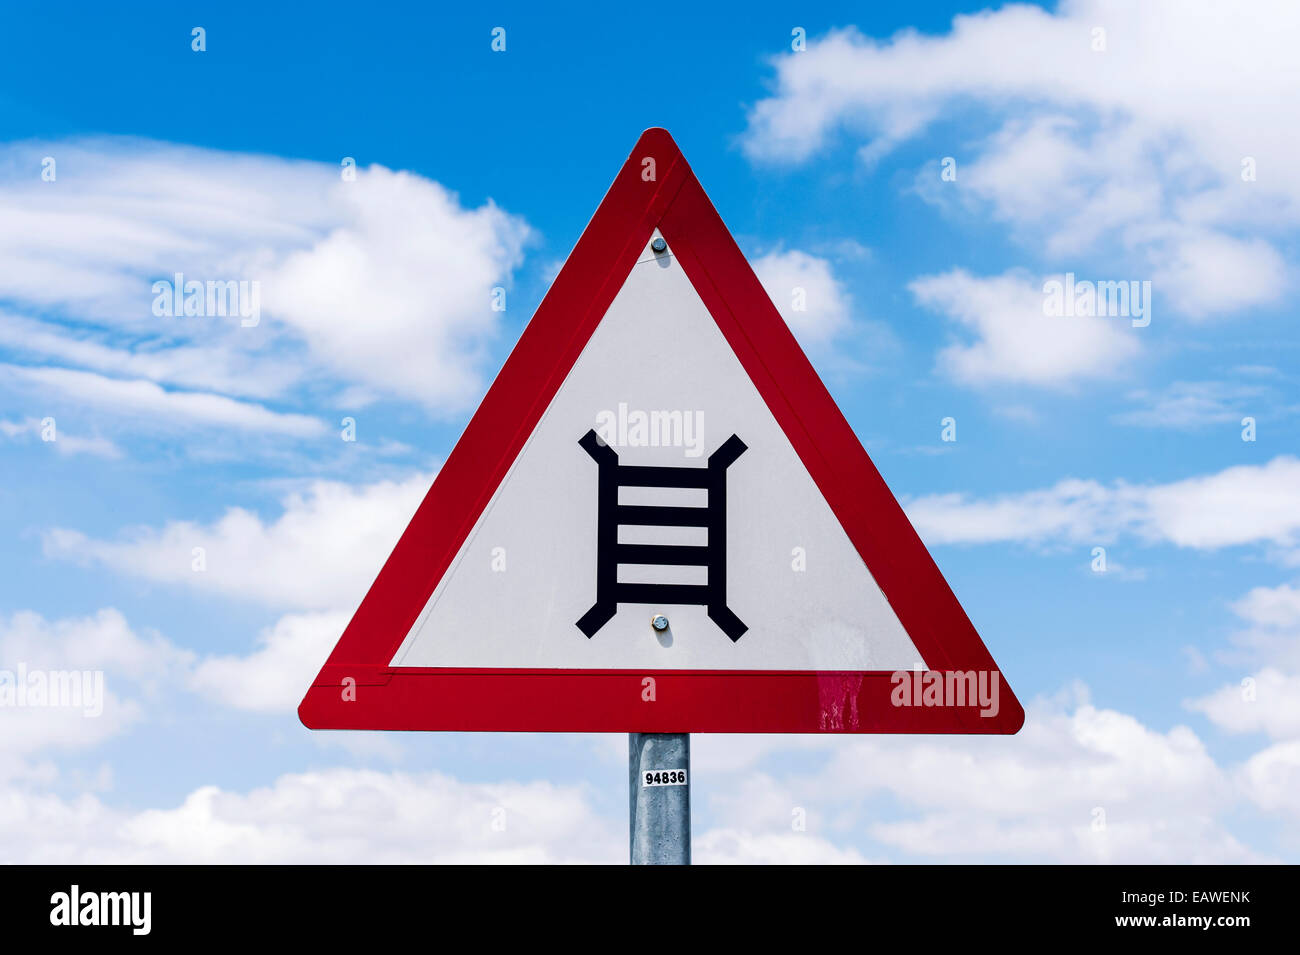 A sign warning of the danger of an upcoming railway crossing. - Stock Image